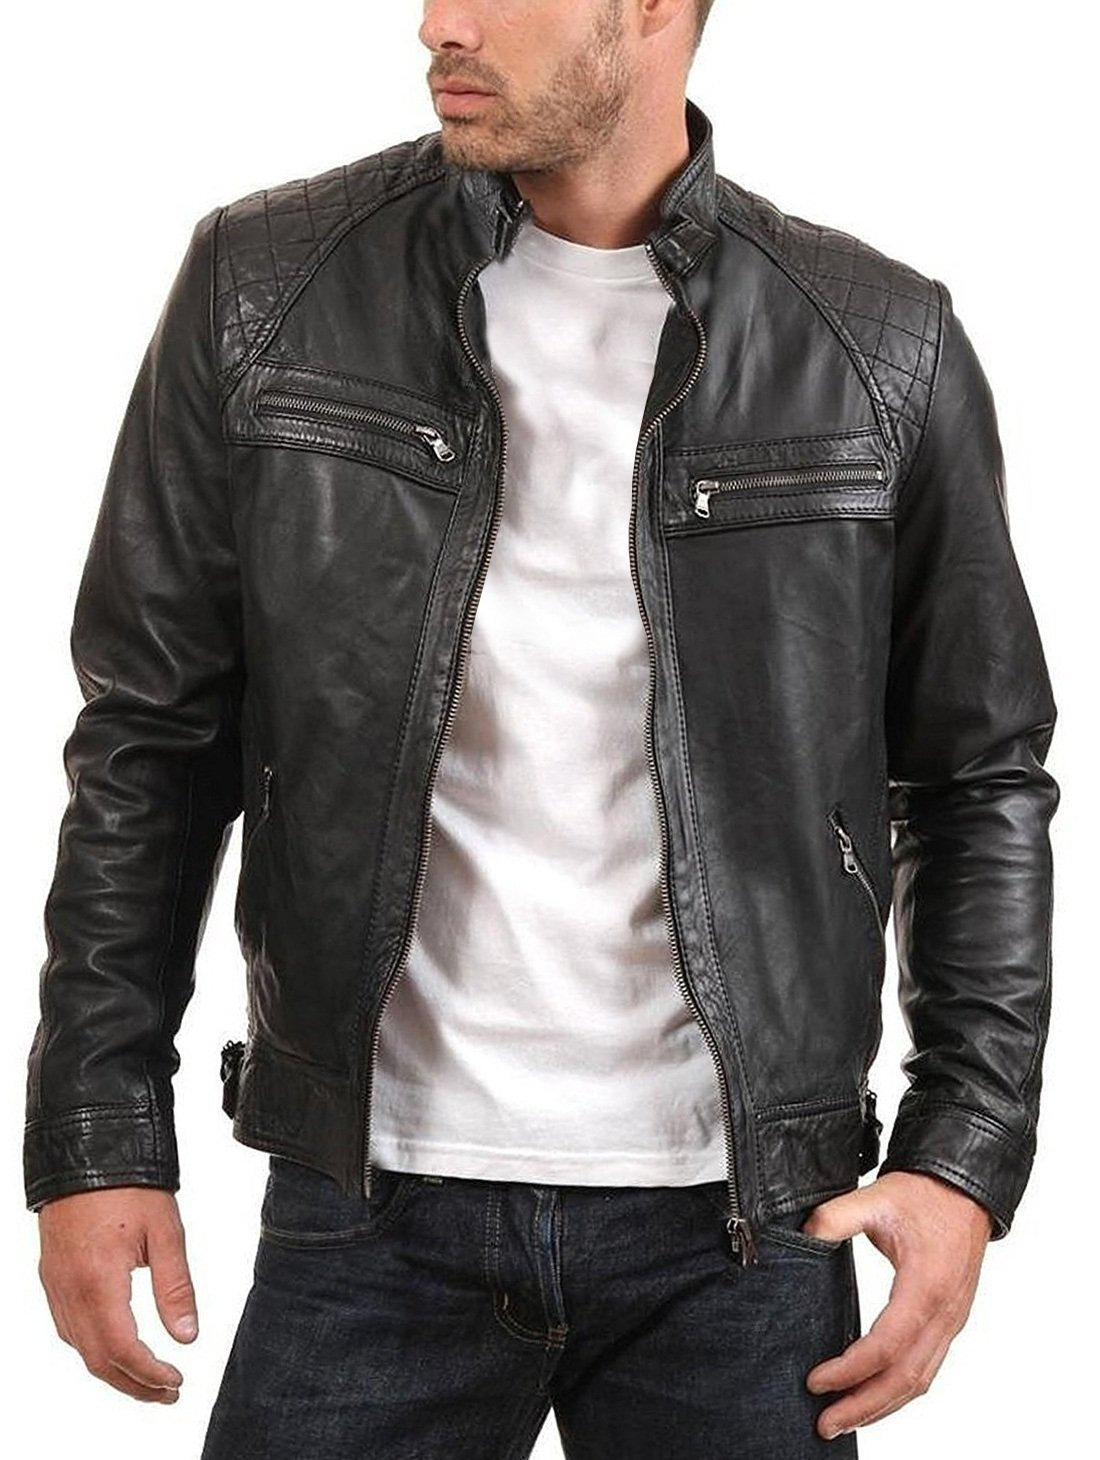 Urban Leather Factory Men's ENZO Black Genuine Lambskin Vintage Leather Jacket M Black by Urban Leather Factory